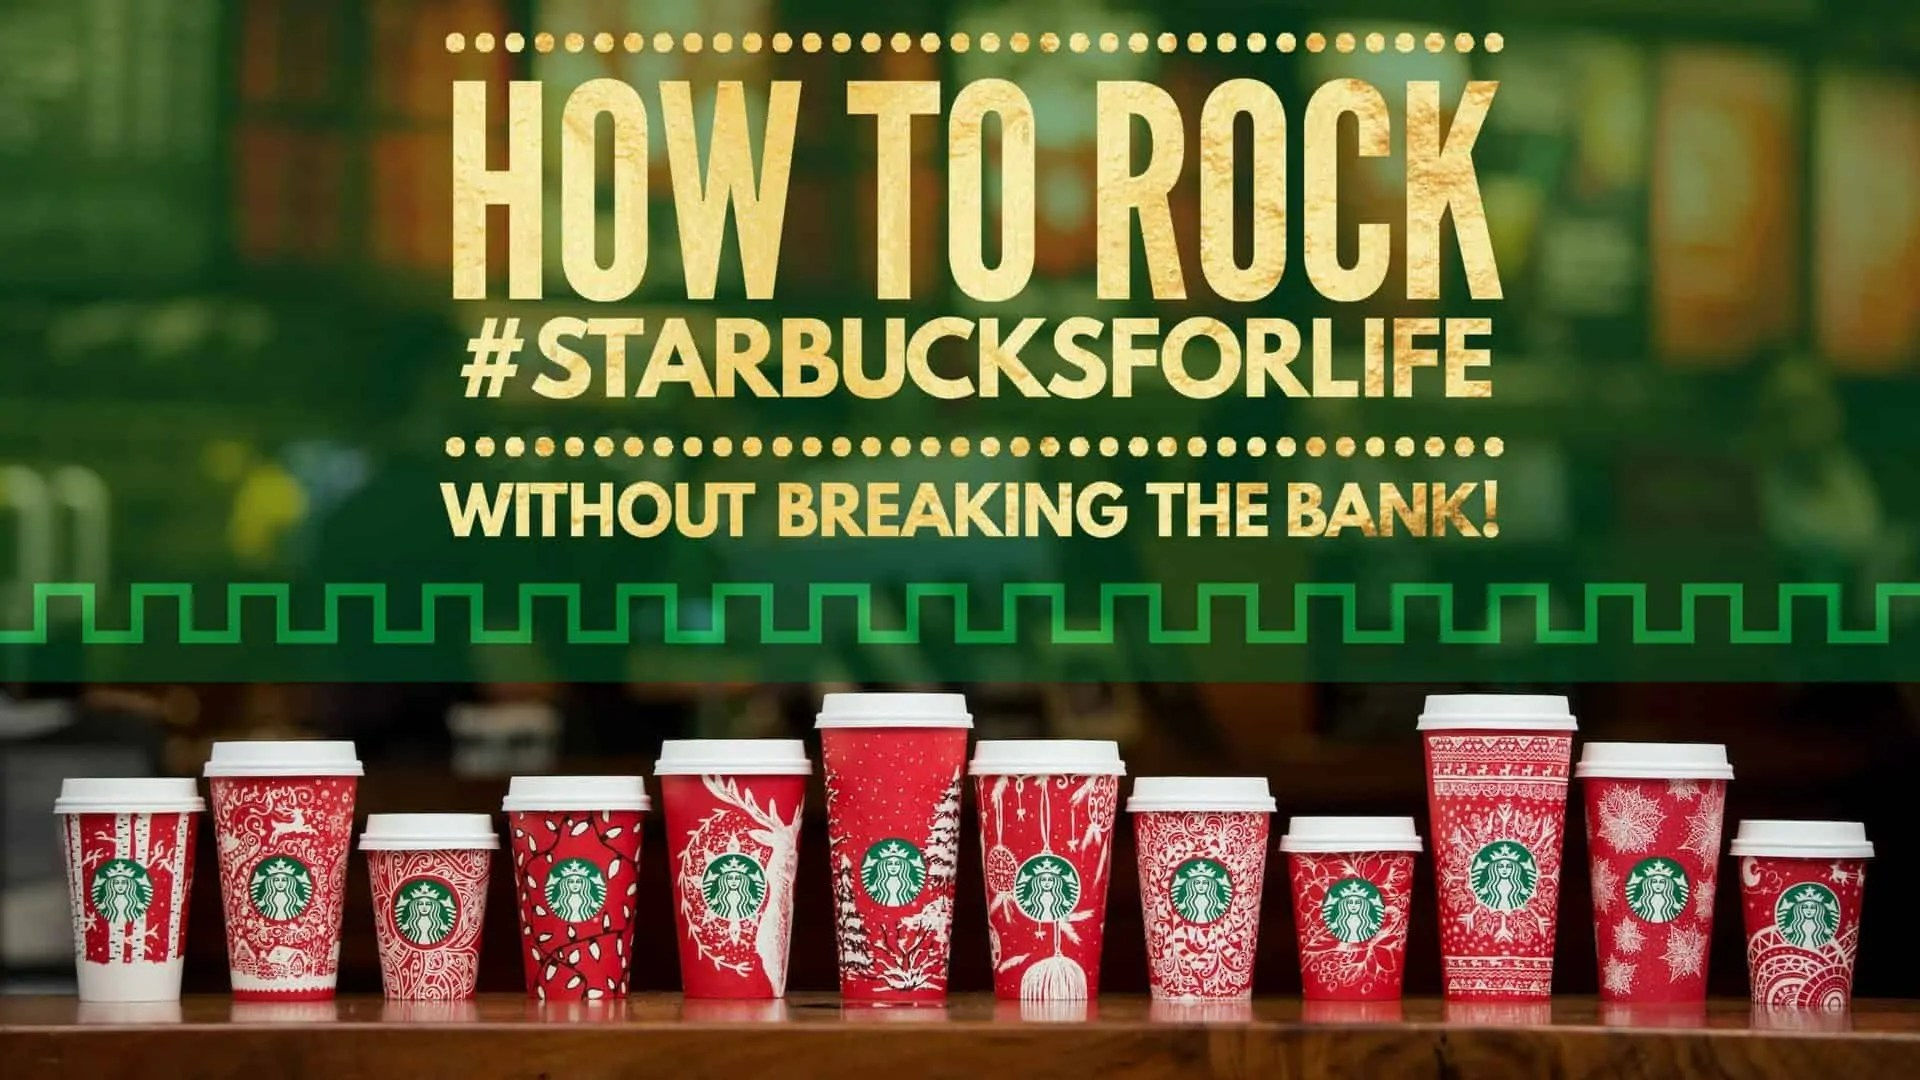 how to rock #starbucksforlife without breaking the bank